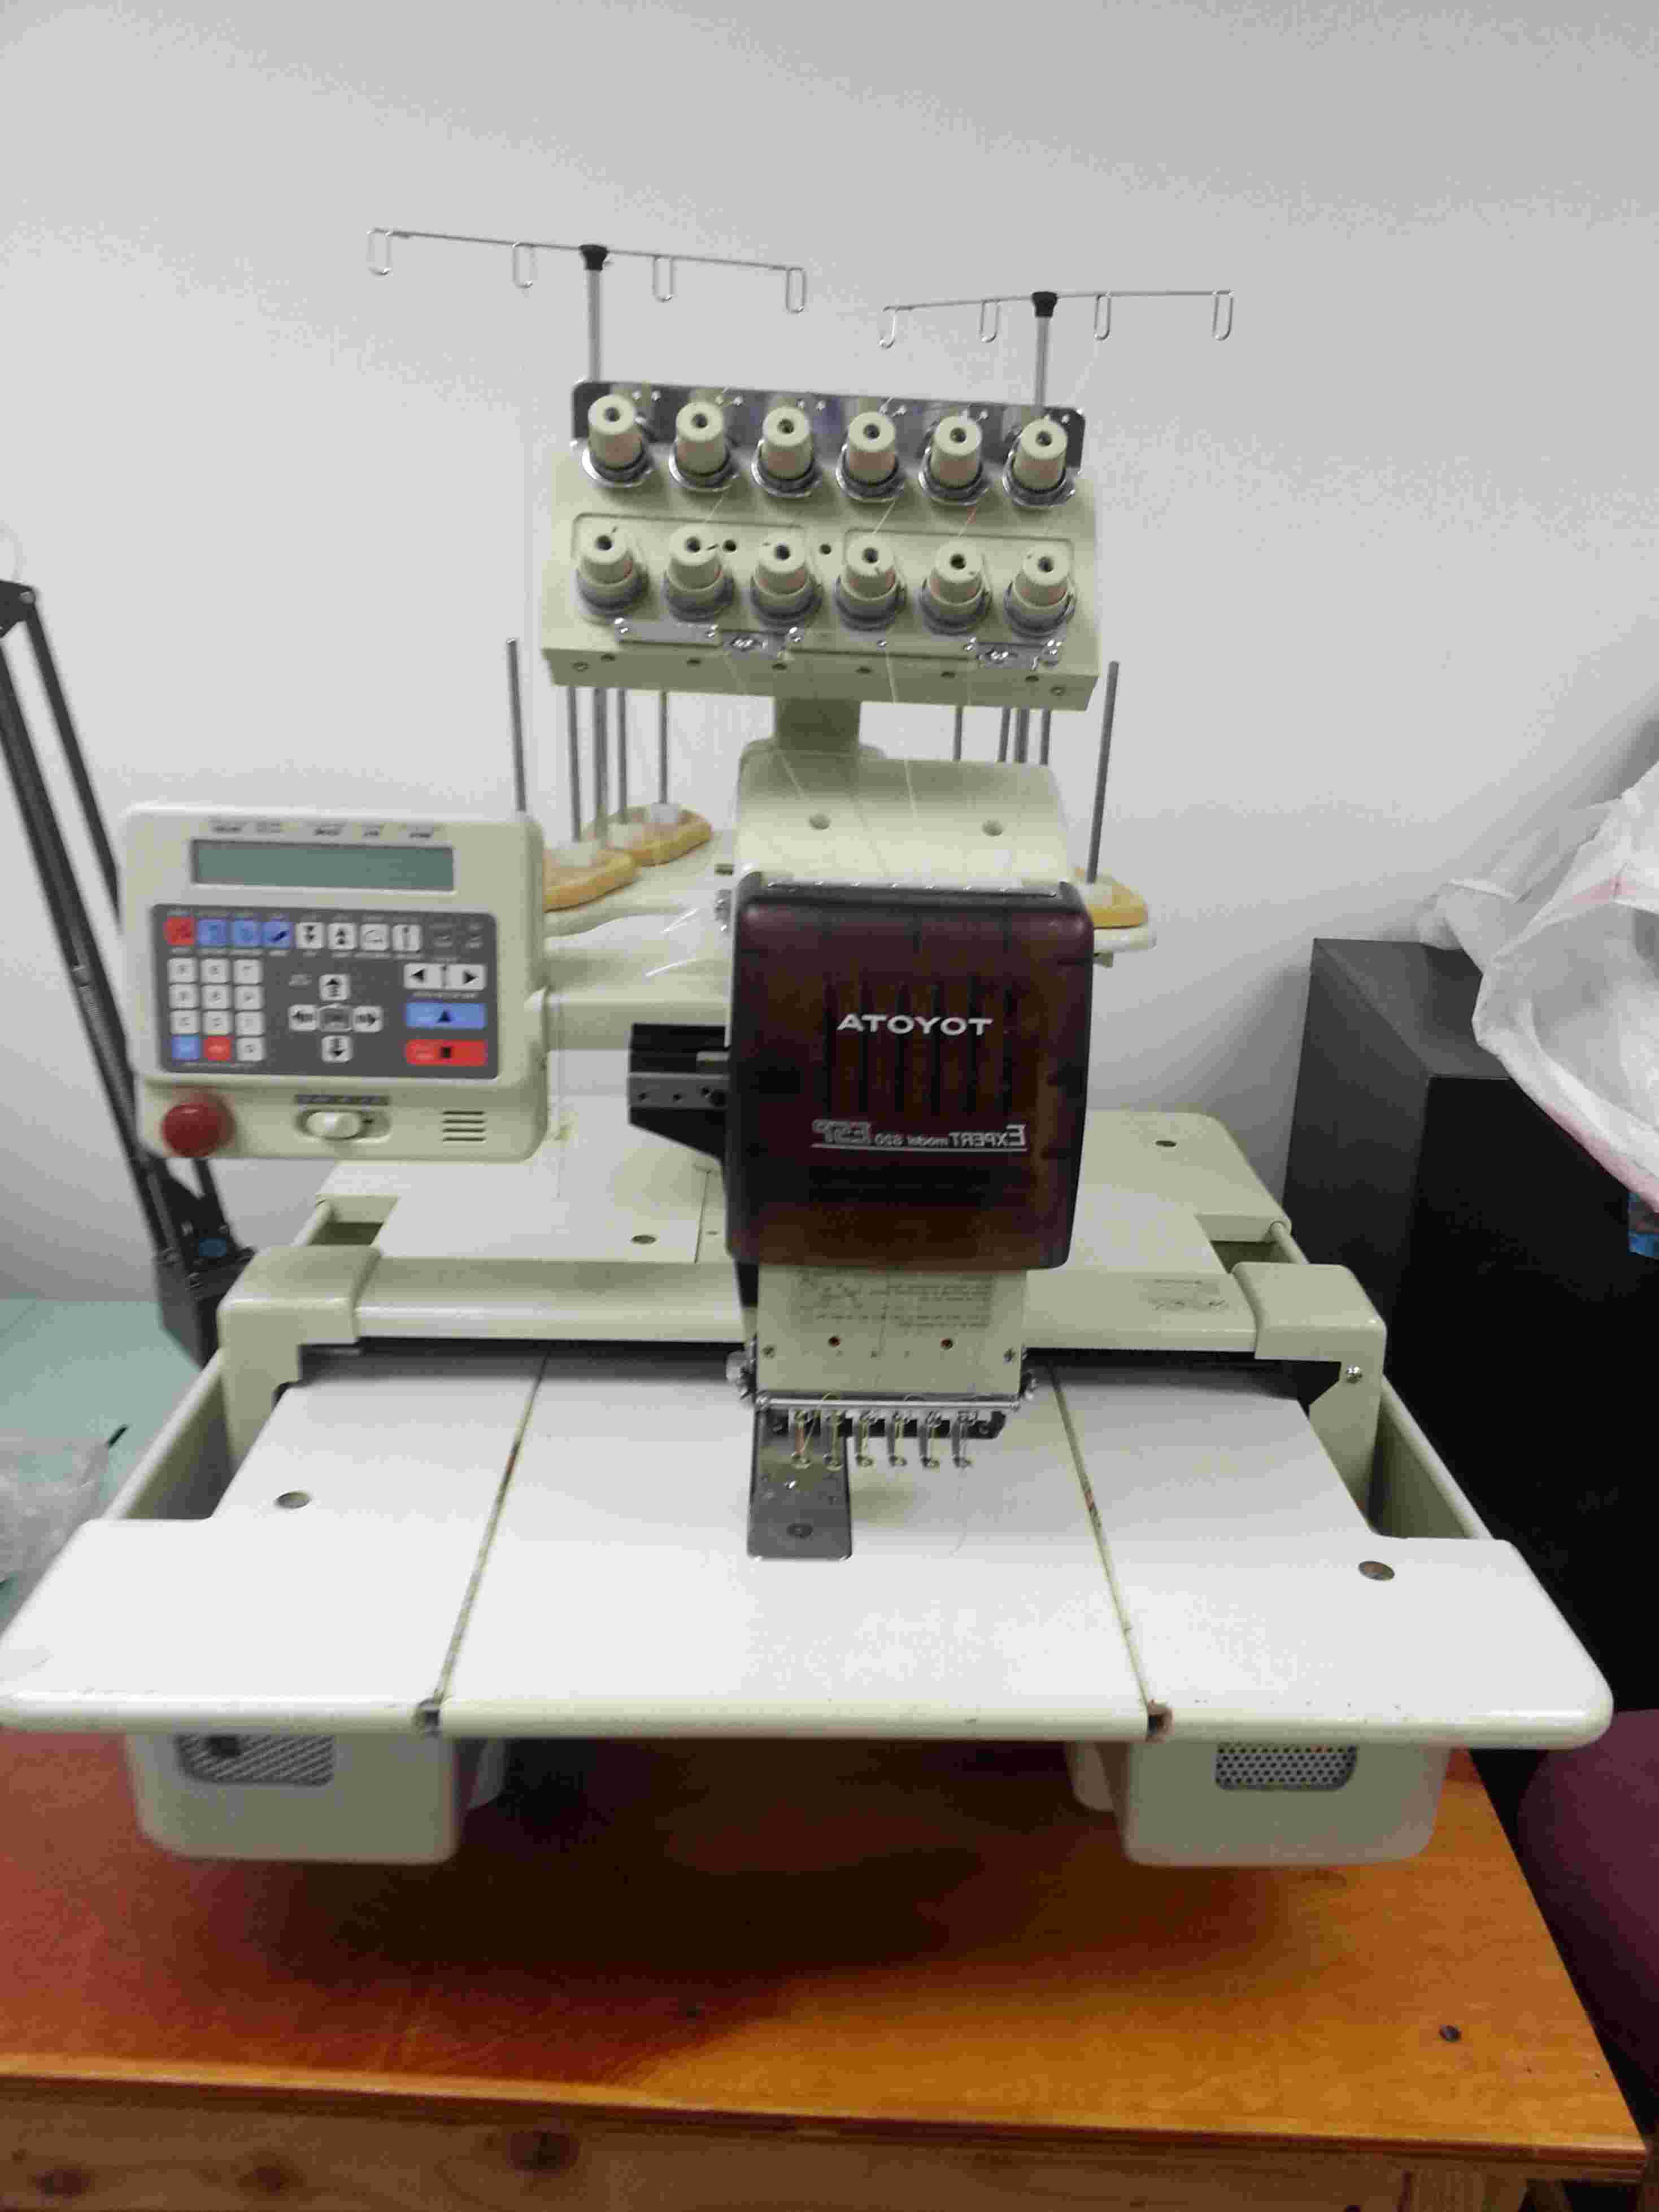 Singer Featherweight For Sale Craigslist : singer, featherweight, craigslist, Commercial, Embroidery, Machine, Canada